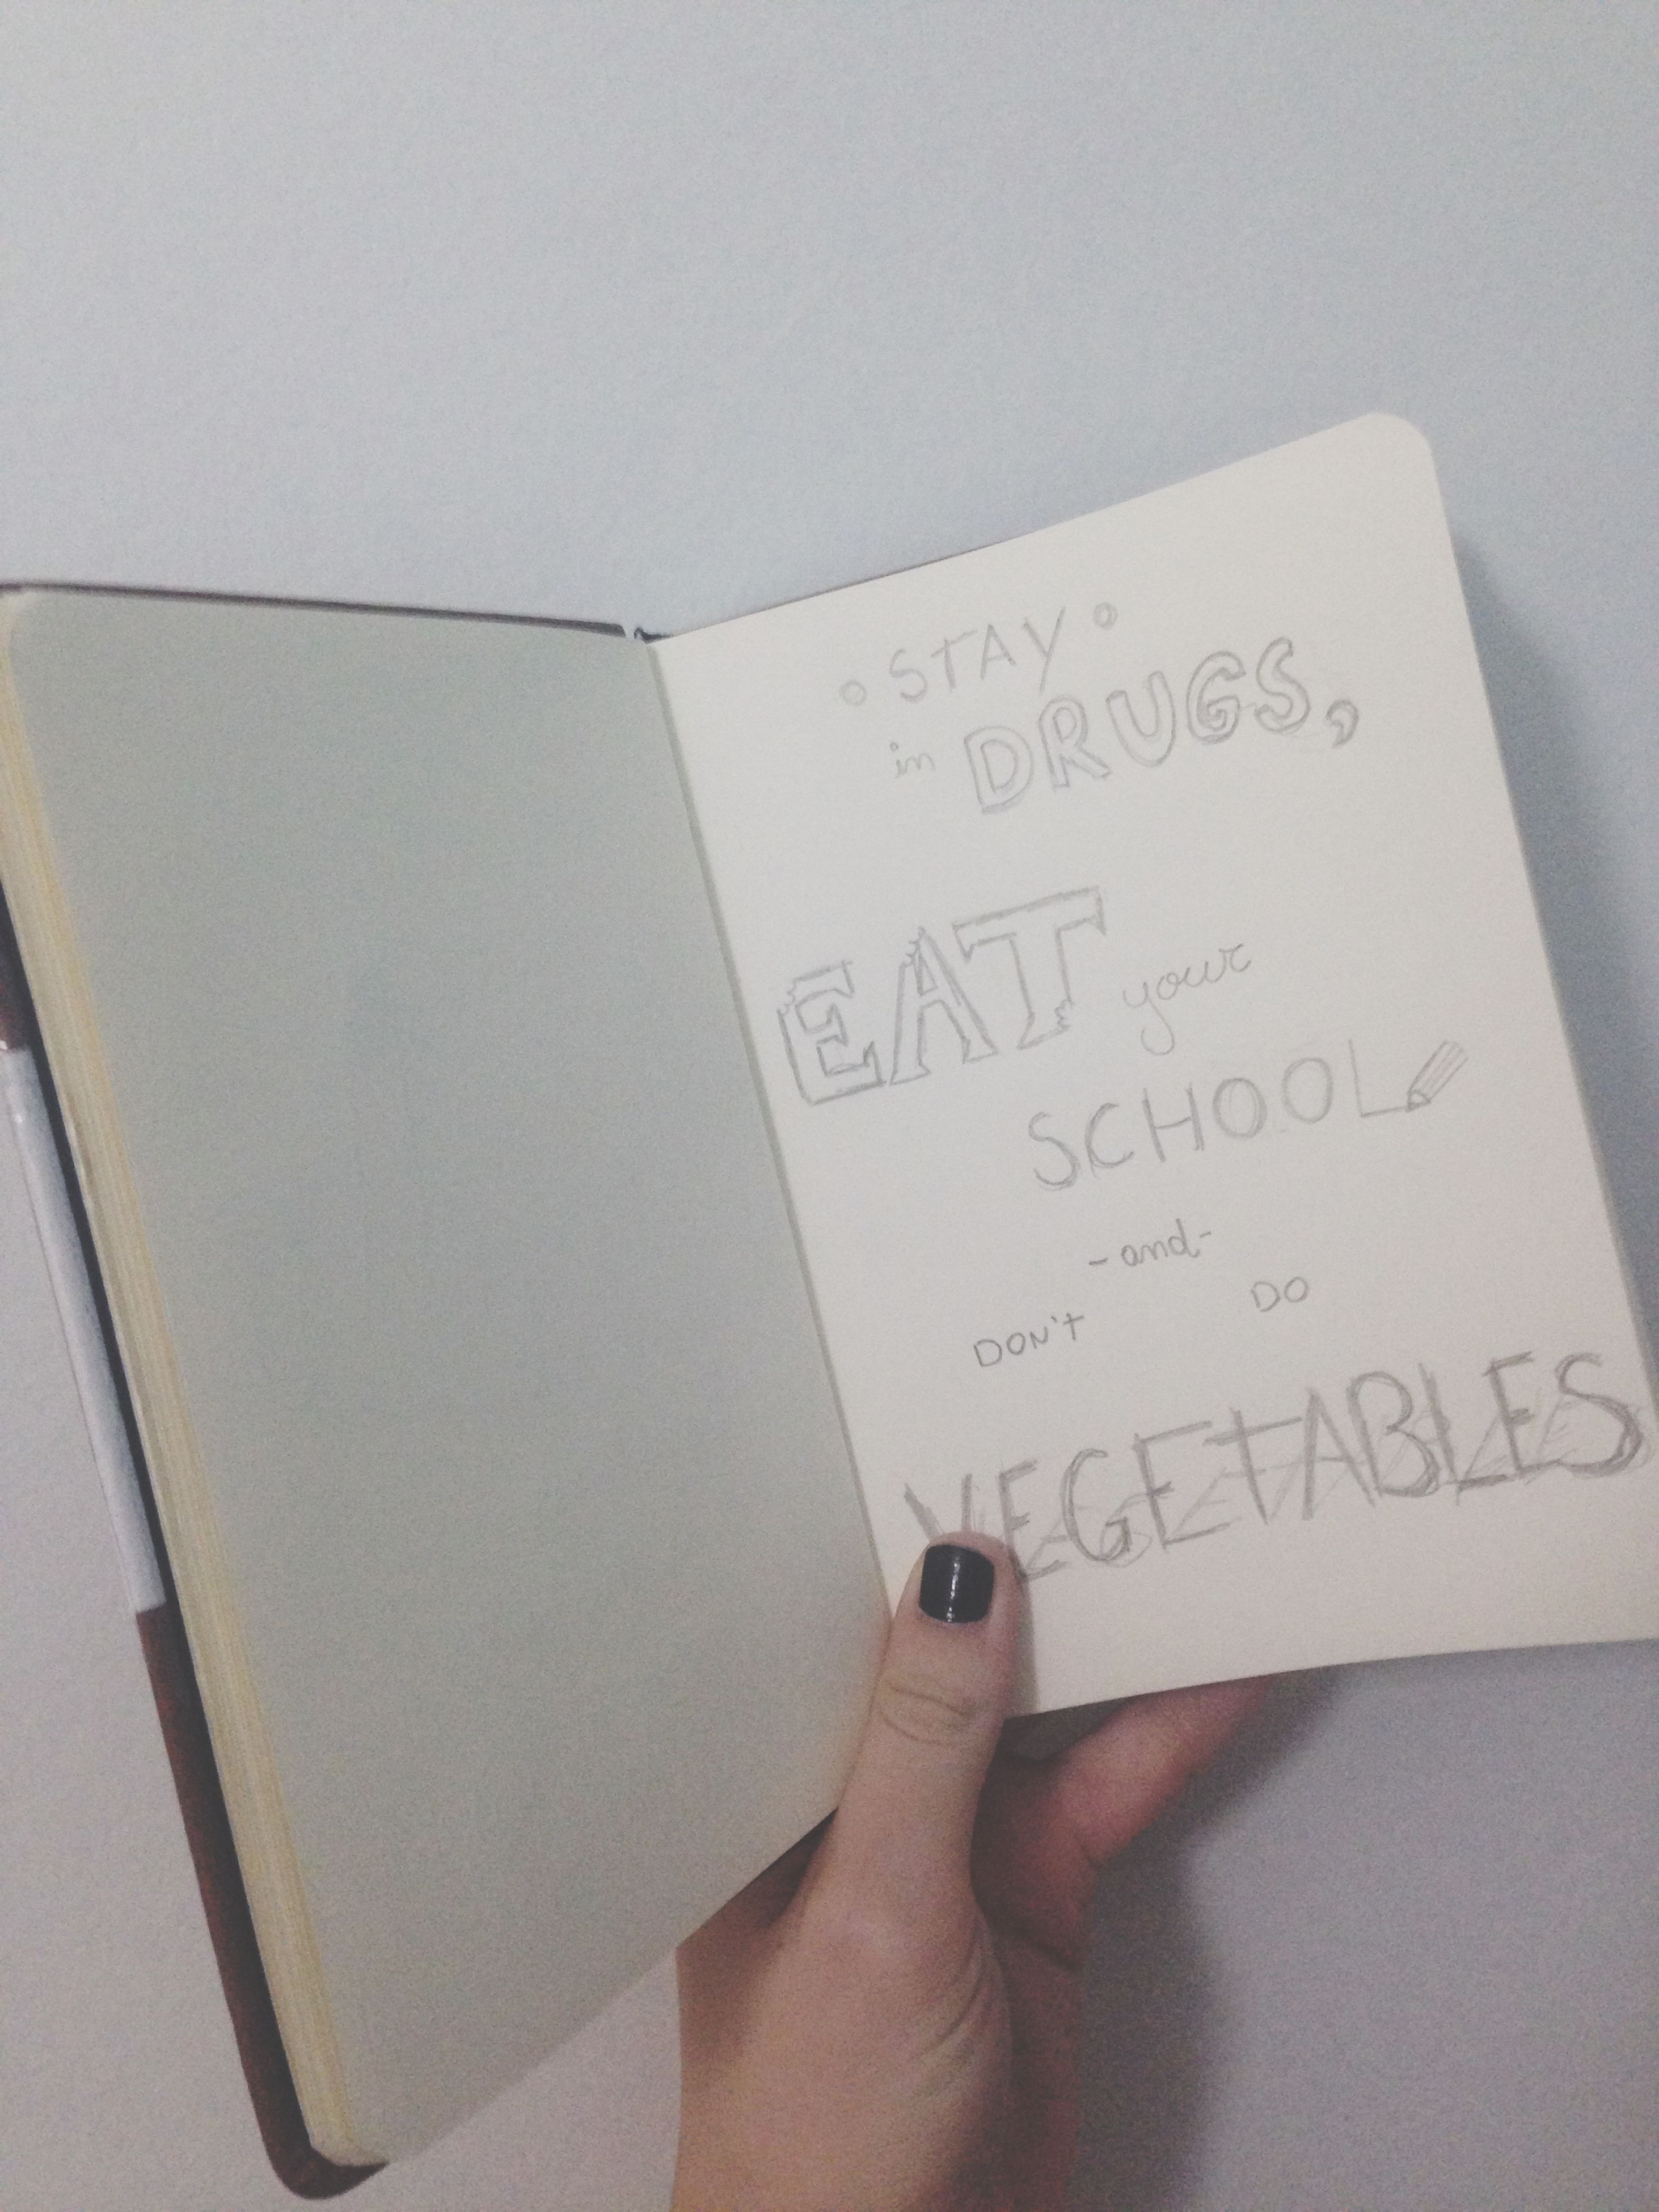 text, indoors, person, communication, western script, part of, cropped, paper, book, human finger, close-up, holding, personal perspective, education, writing, handwriting, message